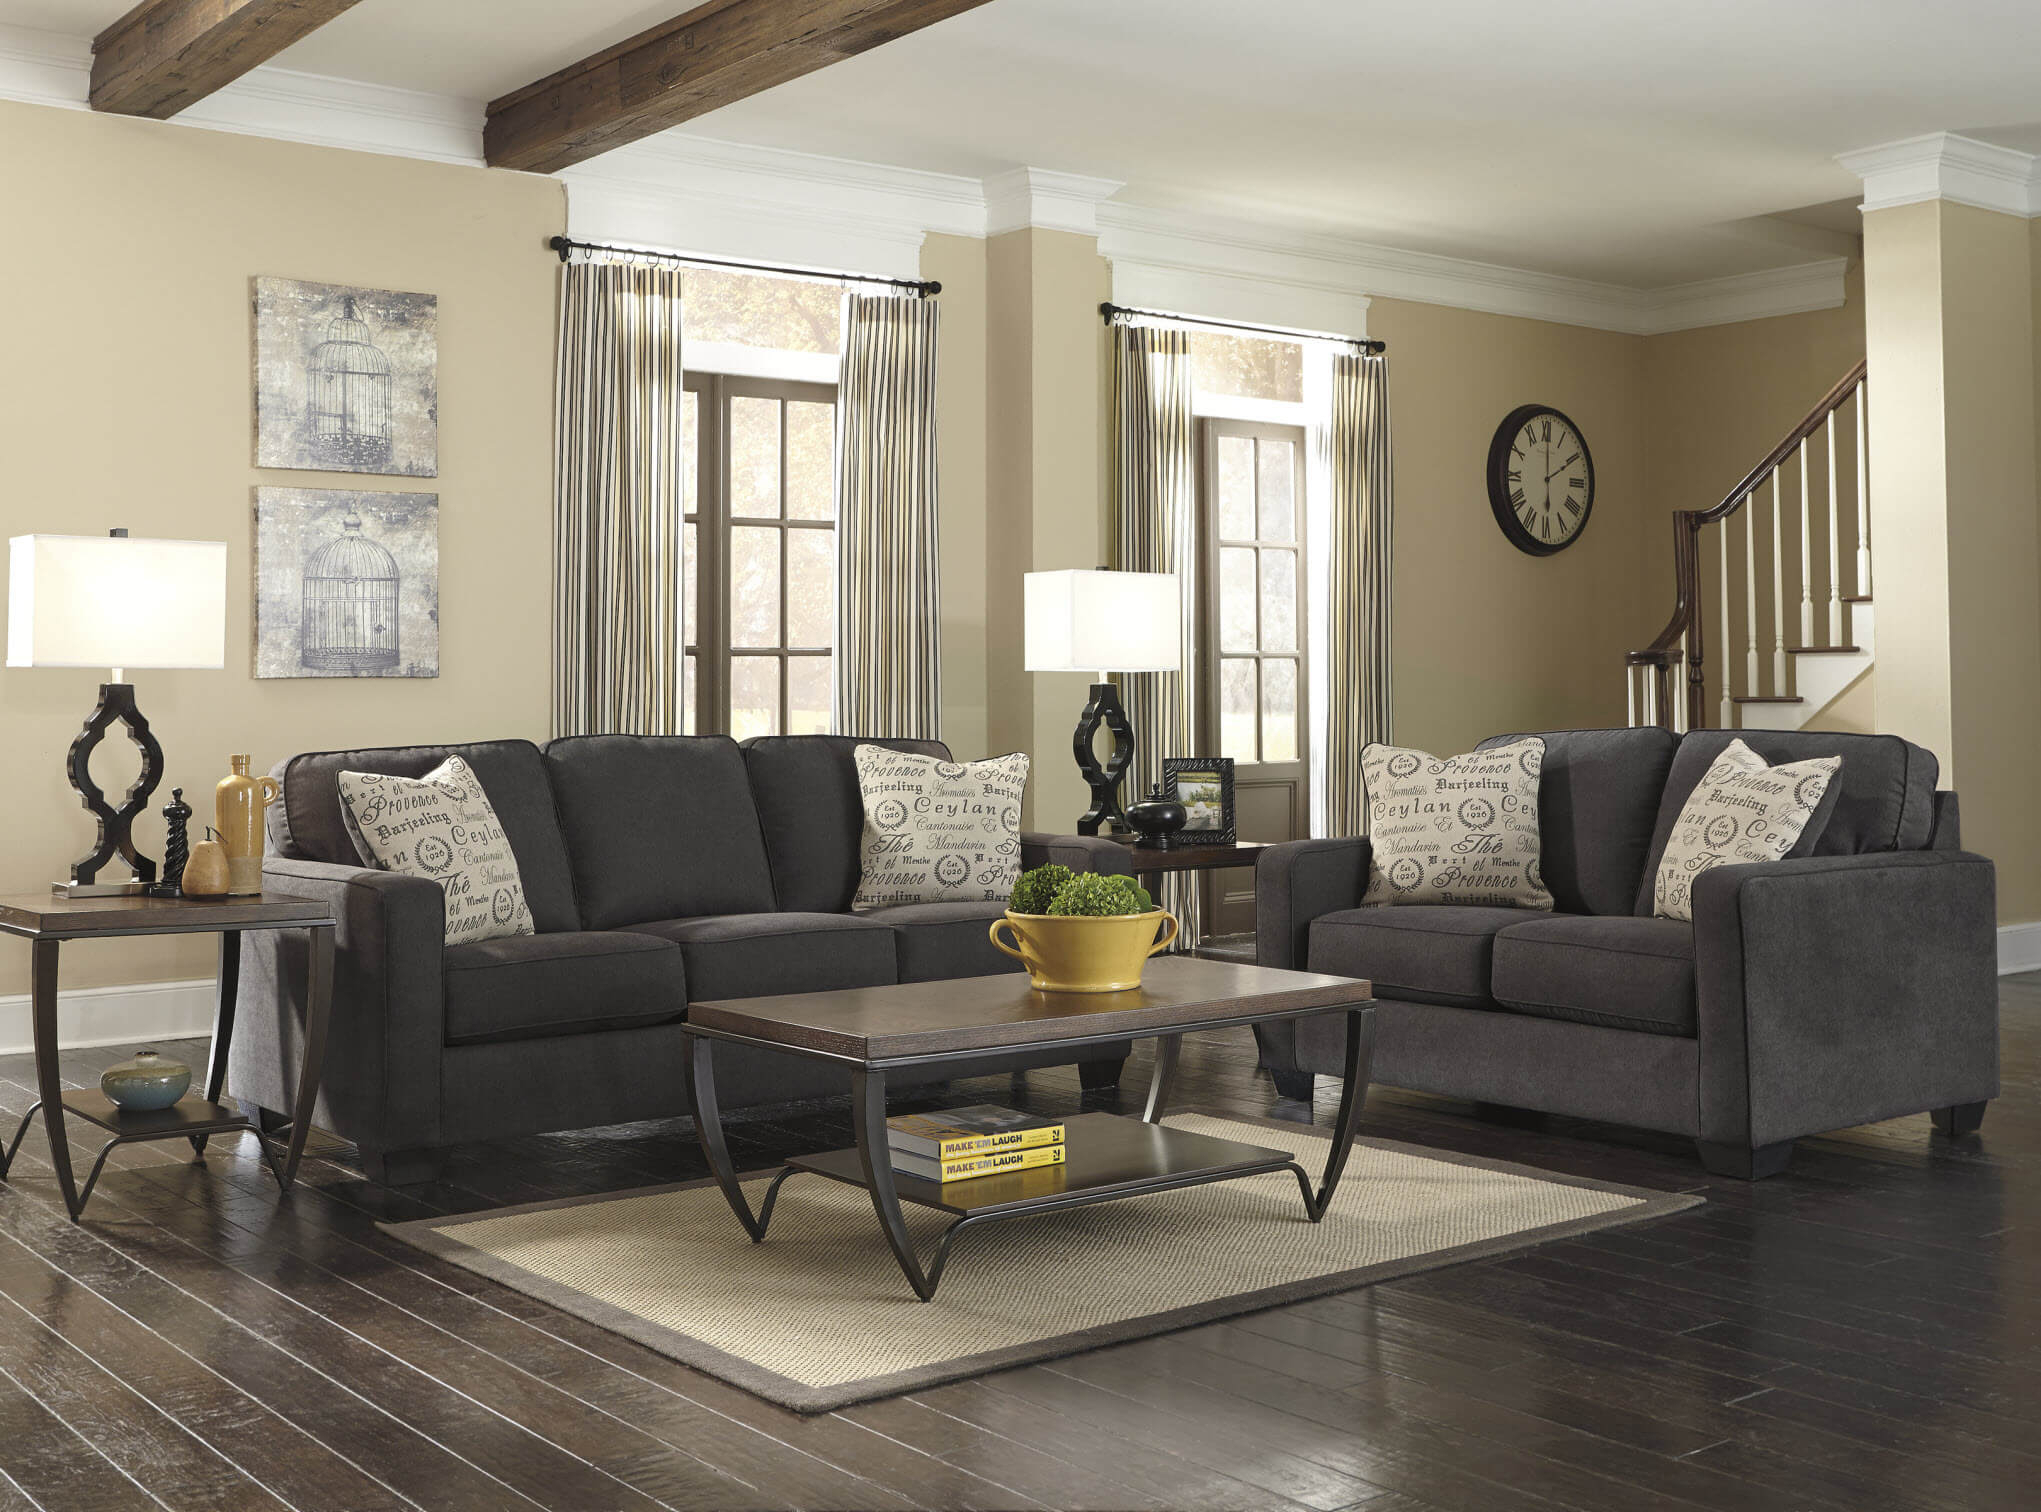 Ashley Alena Charcoal Sofa And Loveseat | Living Room Sets Throughout Sofa Chairs For Living Room (View 14 of 15)